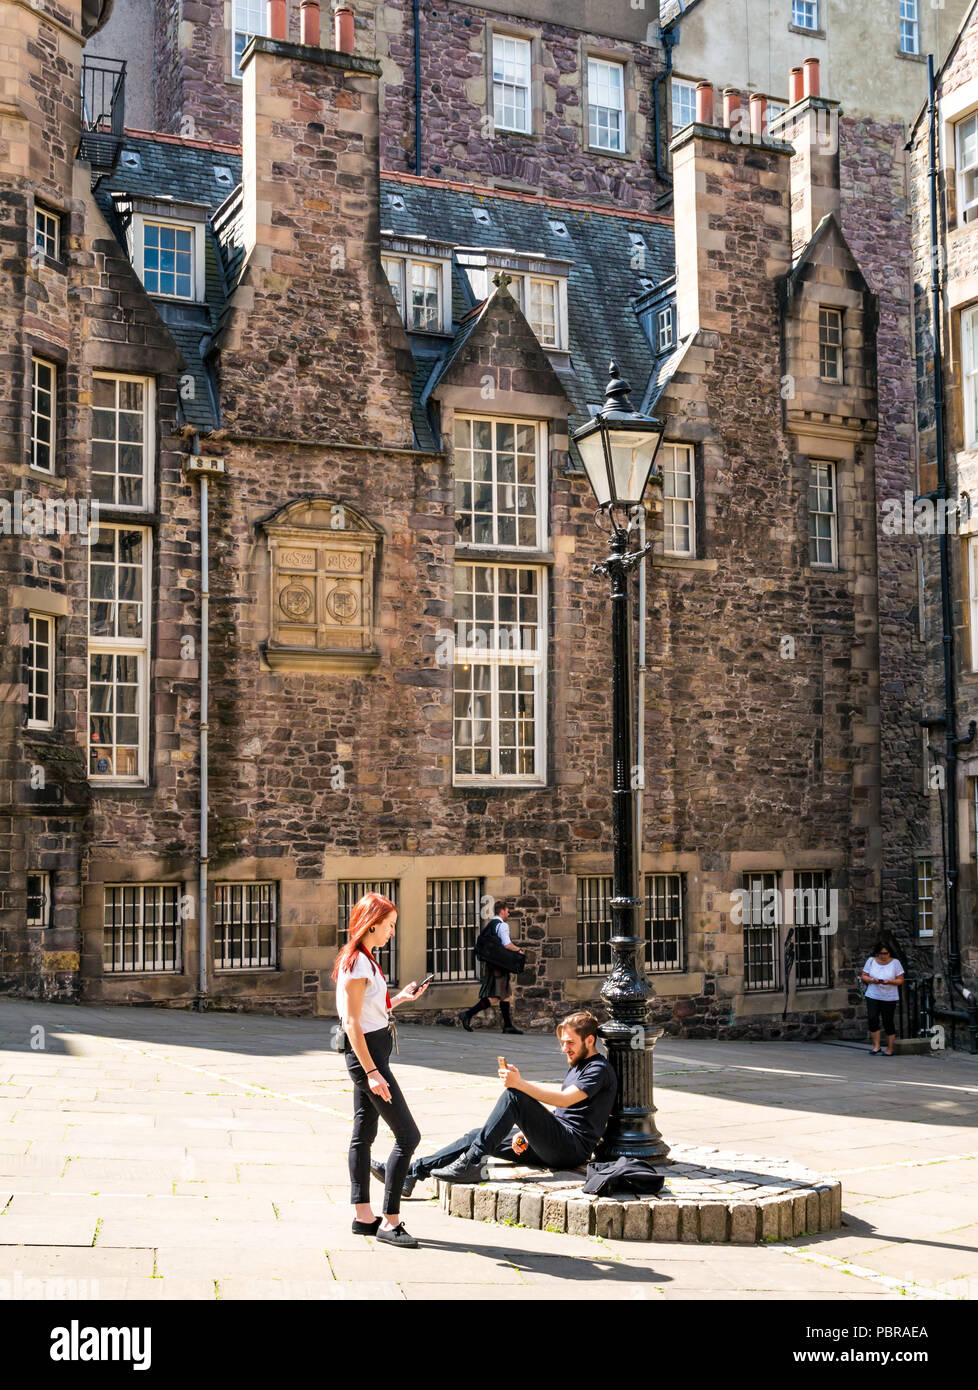 Young couple by old fashioned lamp post relax looking at phones and smoking in Makar's Court outside Writer's Museum, Edinburgh, Scotland, UK - Stock Image